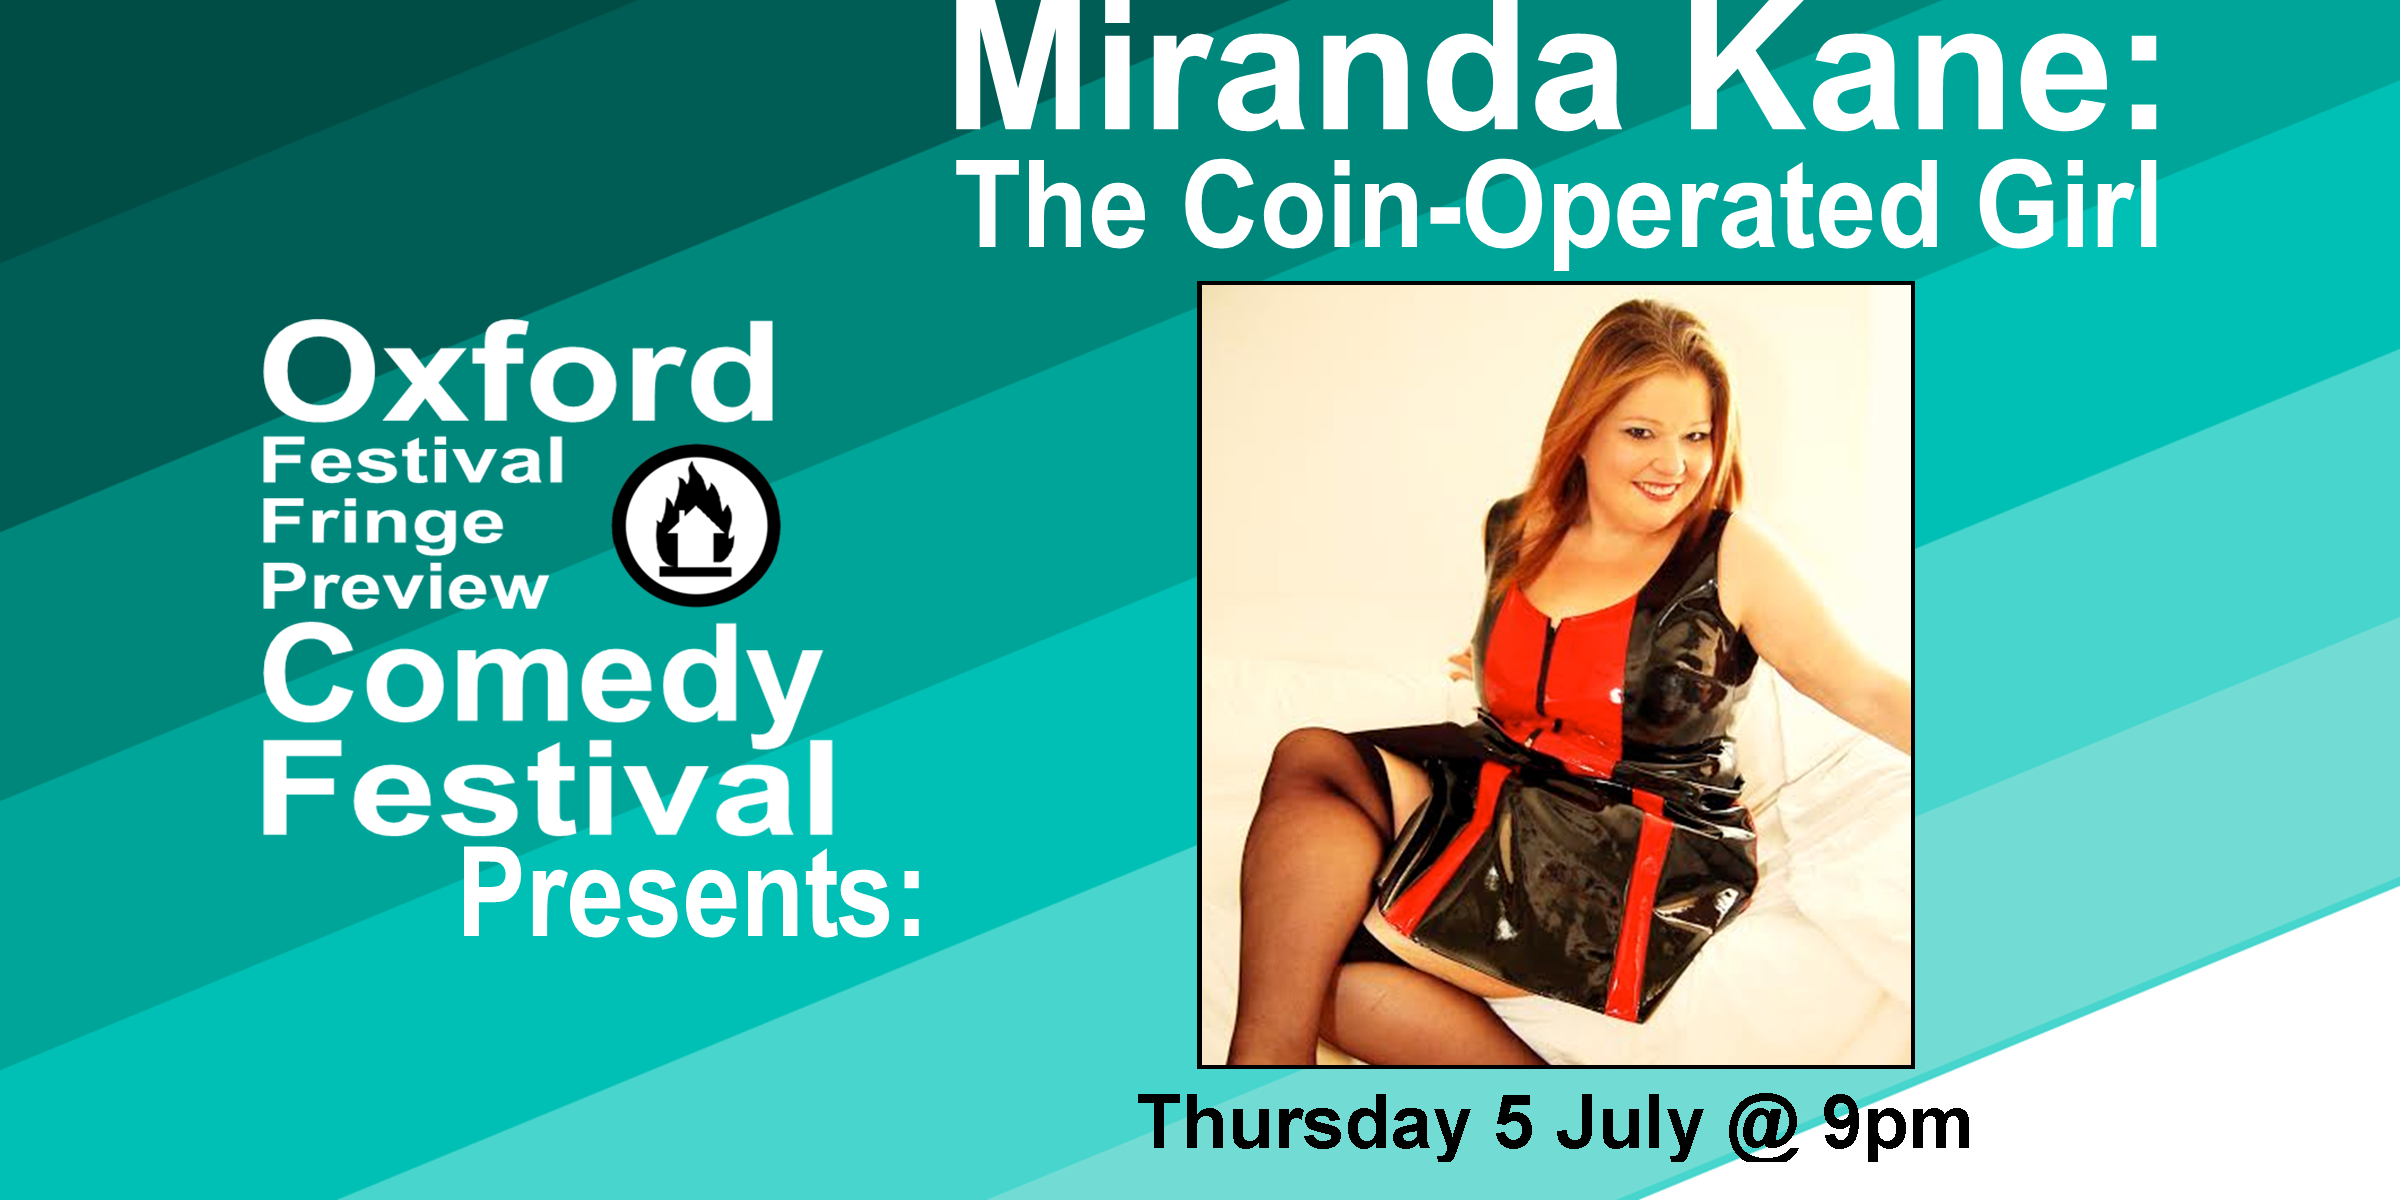 **Please Note: The original show for tonight, Sindhu Vee: Sandhog, had to be canceled due to illness. but we are lucky enough to have an amazing performer, Miranda Kane, filling in:  Fat girls have all the fun!   Miranda Kane - who became a £2000 a night escort, and weighed over 300lbs to boot – knows more than most!  In this tell-all comedy, she exposes the truth about sex workers, their clients, and all the hilarious, heart-warming and often bizarre moments in a unique career.  This five star show has sold out at theatres and festivals across the UK, and is an eye-opening look at a fascinating industry. With hilarious anecdotes and a no-holes barred (pun intended) Q&A, Coin-Operated Girl offers a whole new angle on the world of sex-work.   Even if it's not your first time with a prostitute, it'll be the funniest!  Doors at 8:50/Show at 9pm  60 minutes   Get Your Tickets Here!